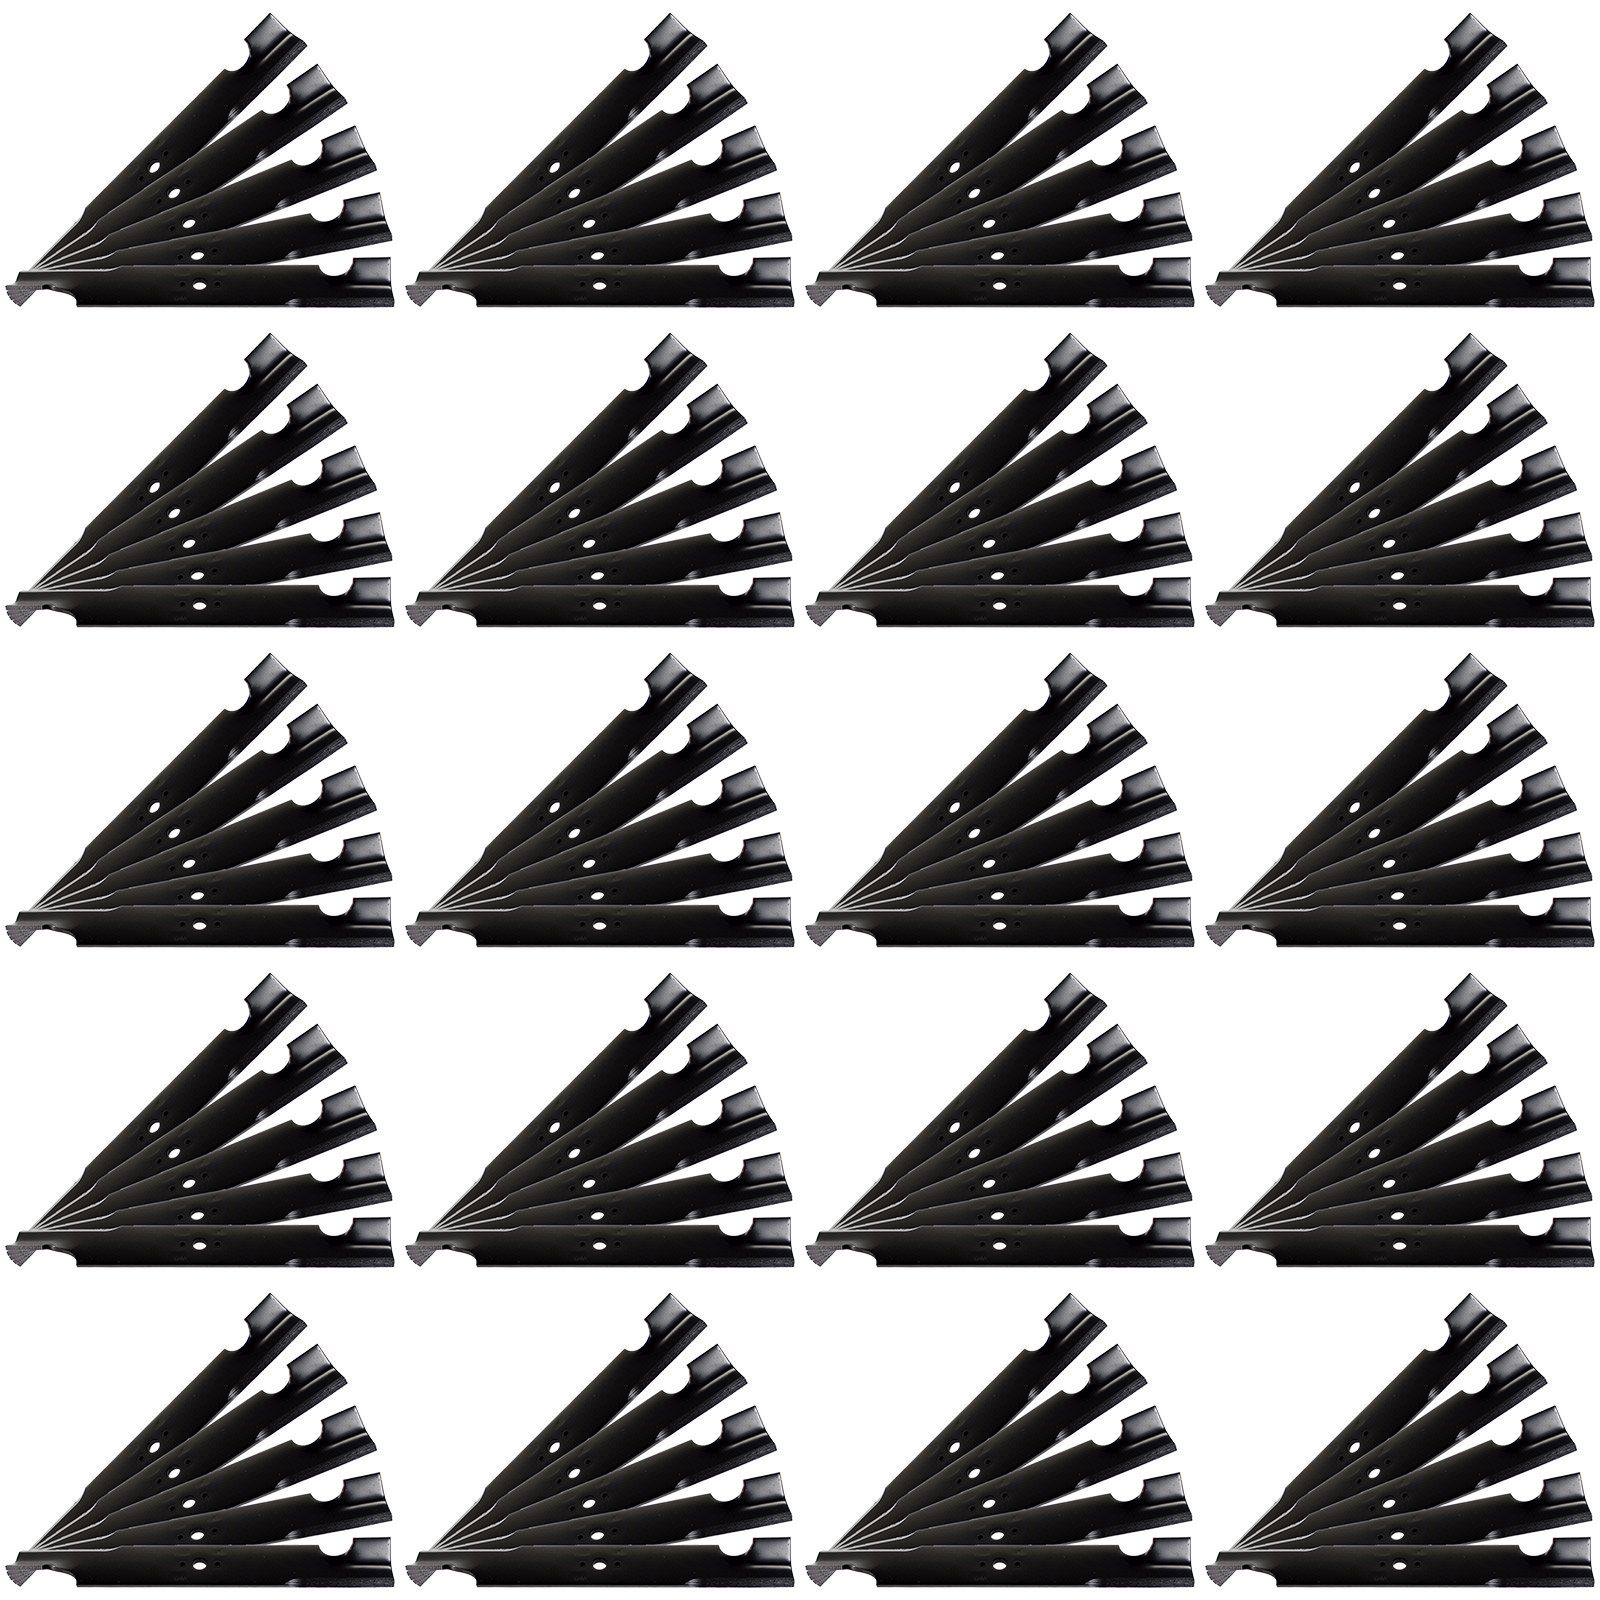 100 Pack - USA Mower Blades ® Commercial Hi-Lift fits Exmark ® 103-2528 103-6582-S 103-6584 633484 303283 633482 633485